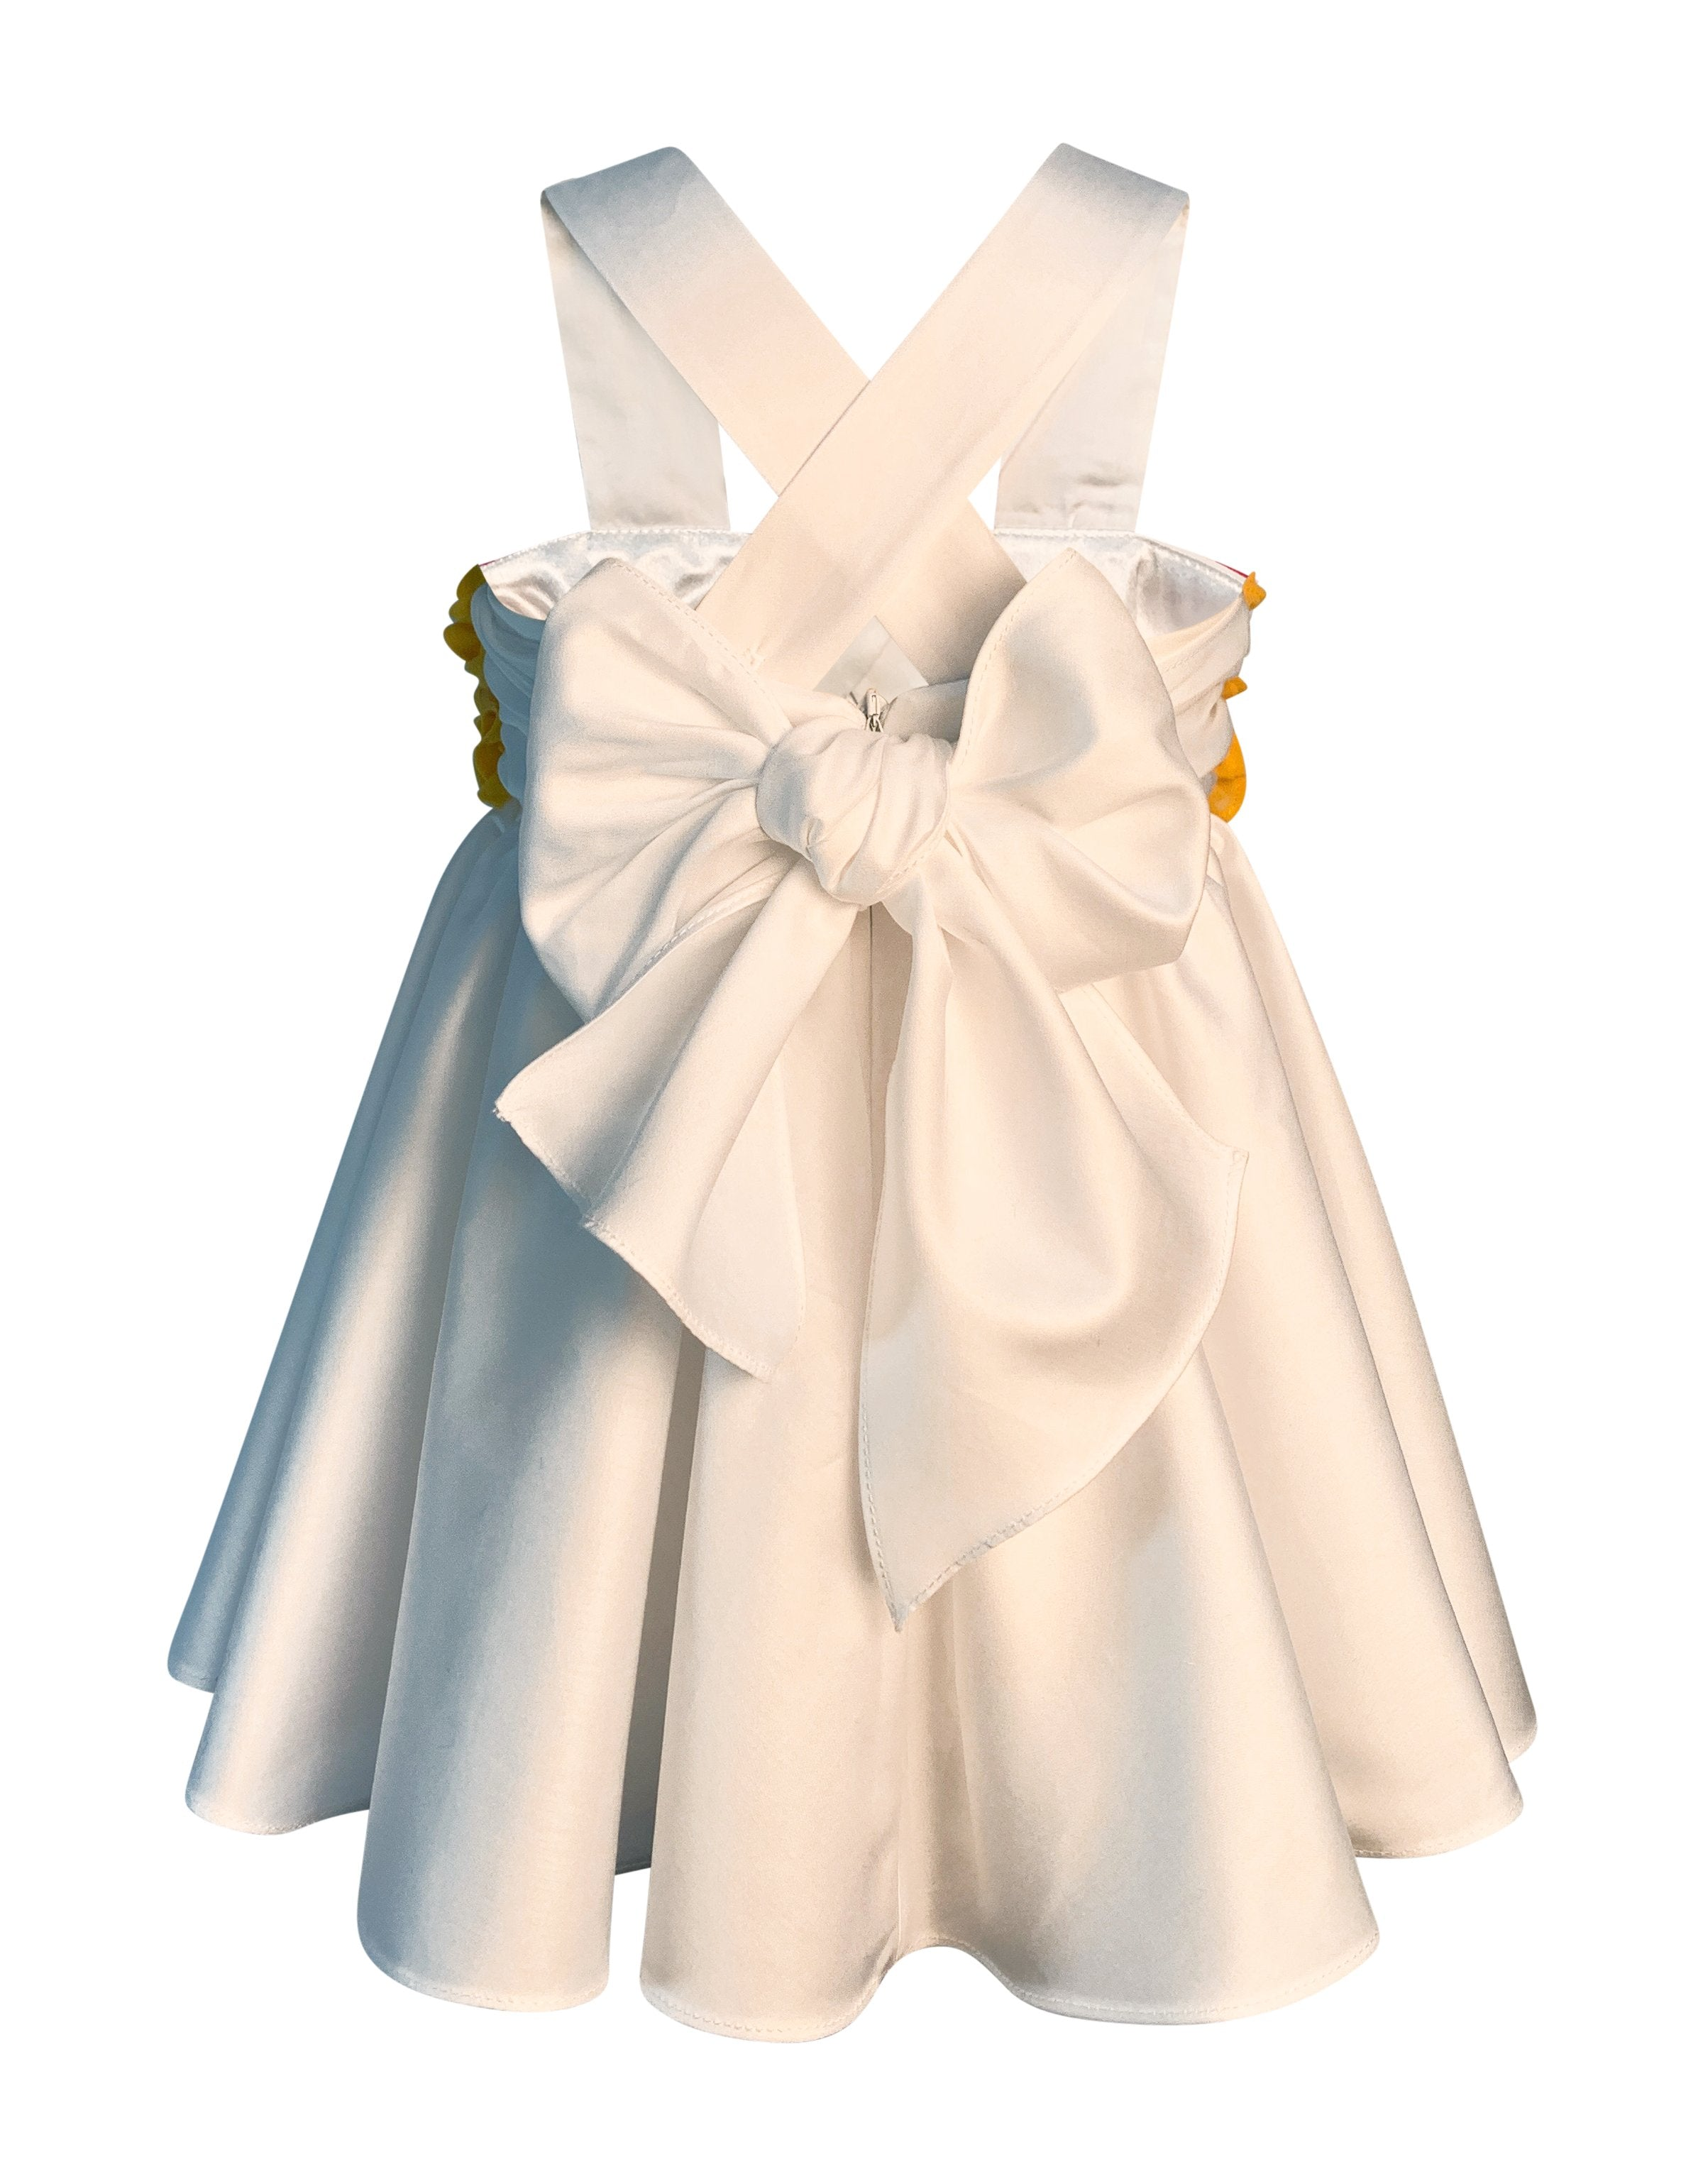 Helena and Harry Girl's White Cotton Sateen Sundress with Bright Yellow Ruffles